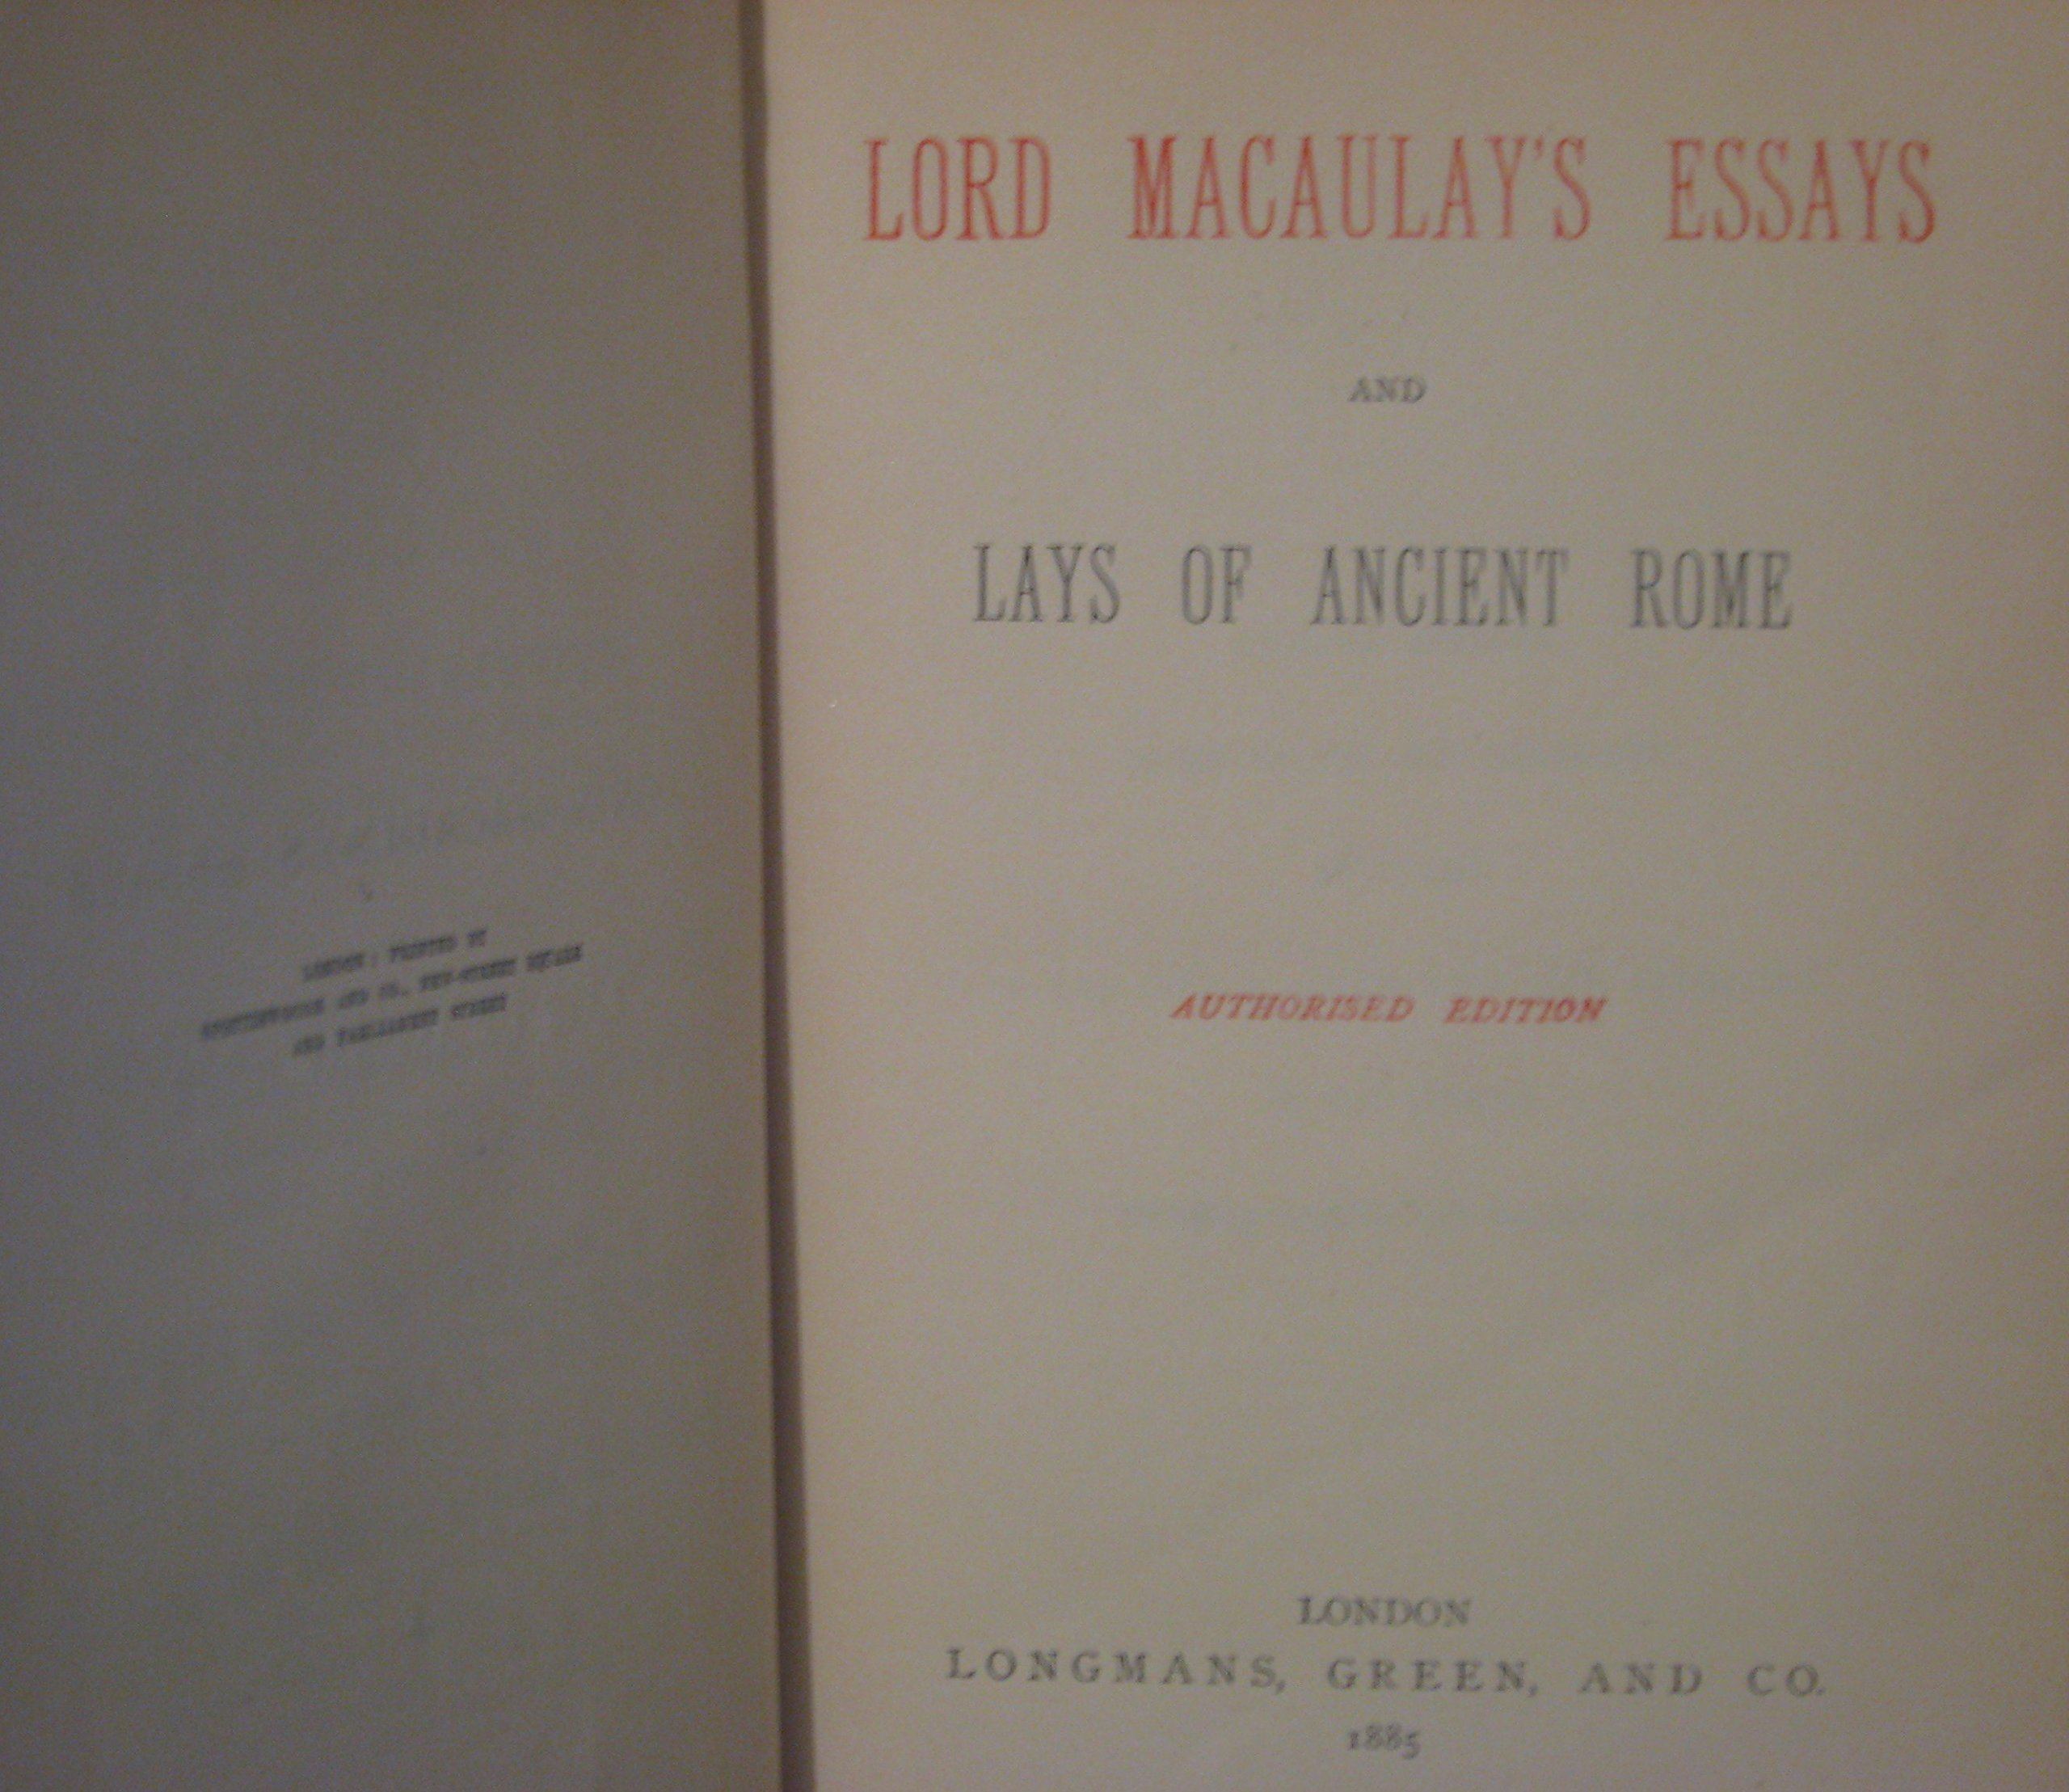 lord macaulay s essays and lays of ancient rome co uk lord macaulay s essays and lays of ancient rome co uk lord macaulay books